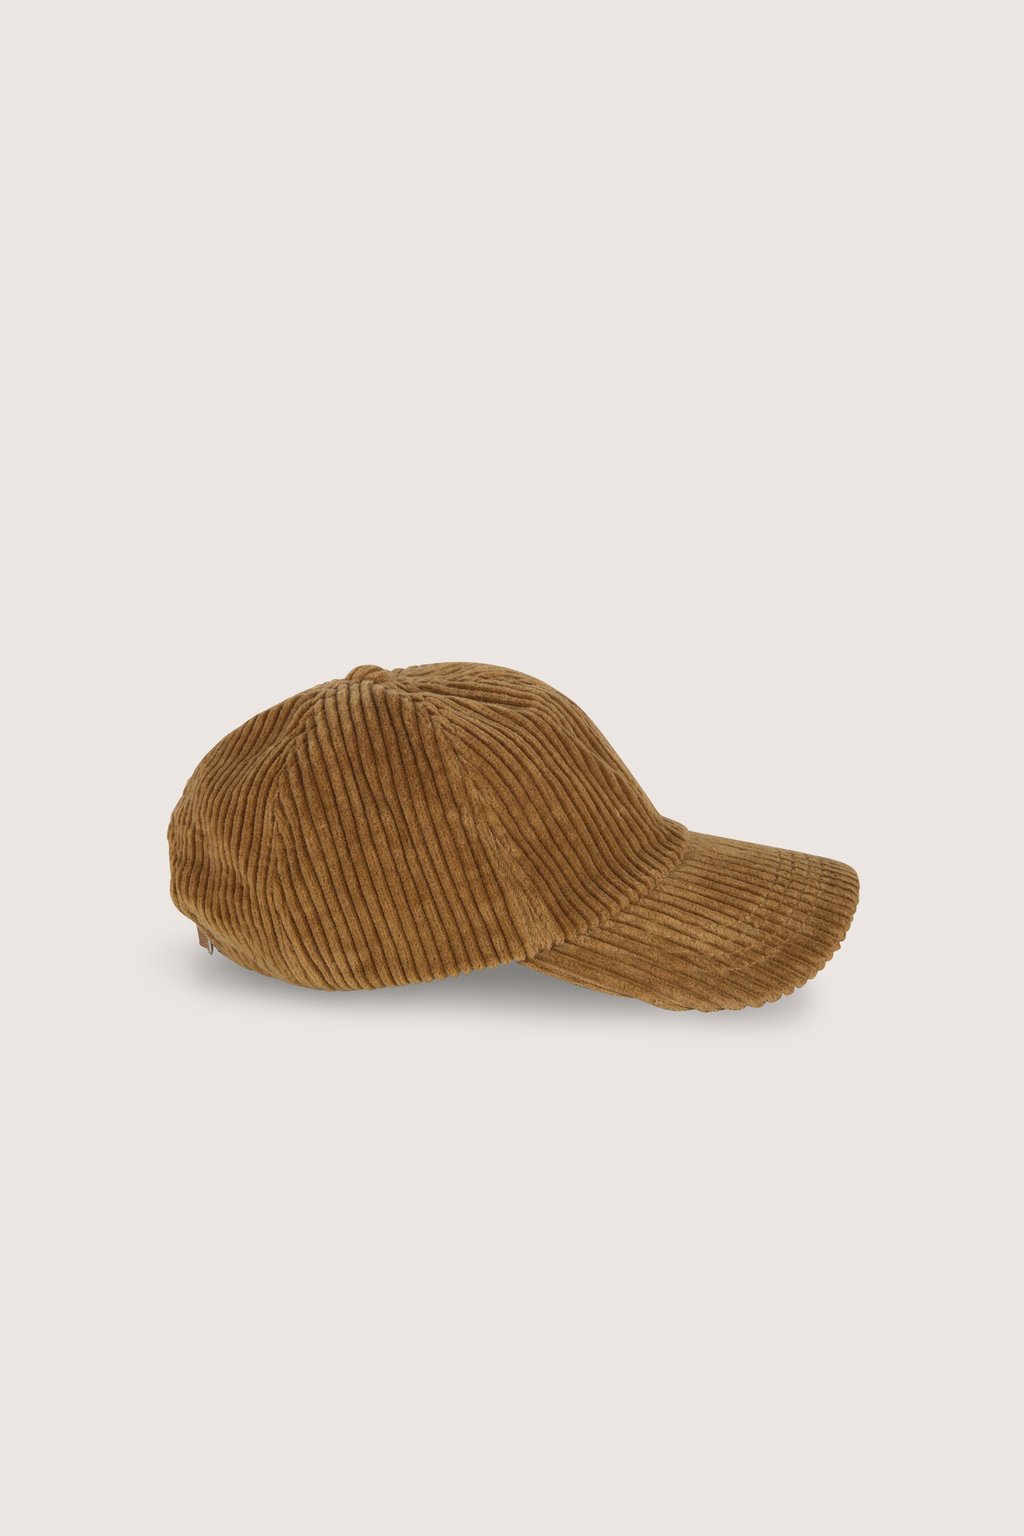 Hat H018 Brown 1